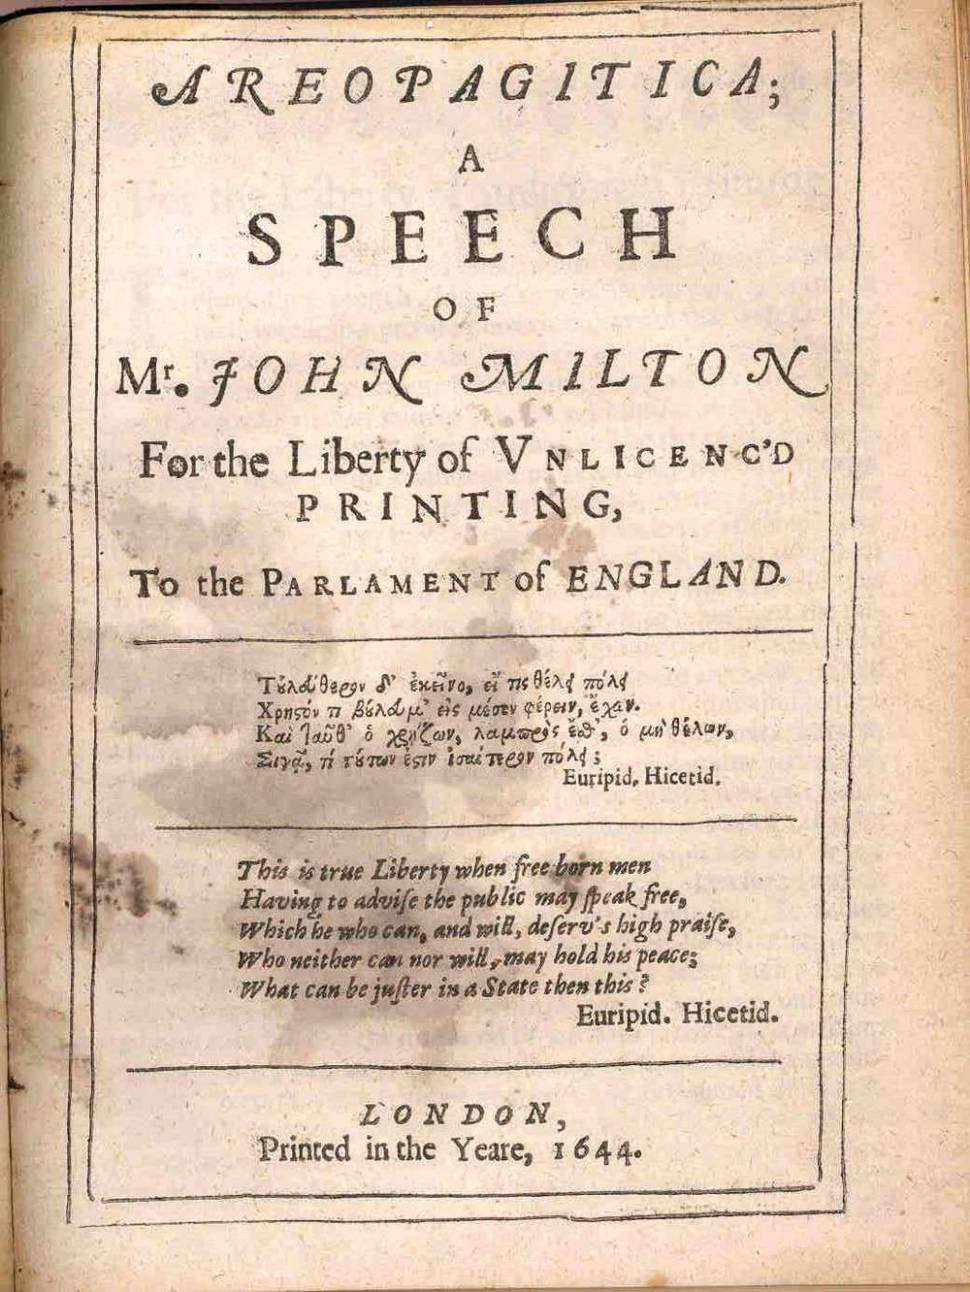 How #Article13 is like the Inquisition: John Milton Against the EU #CopyrightDirective